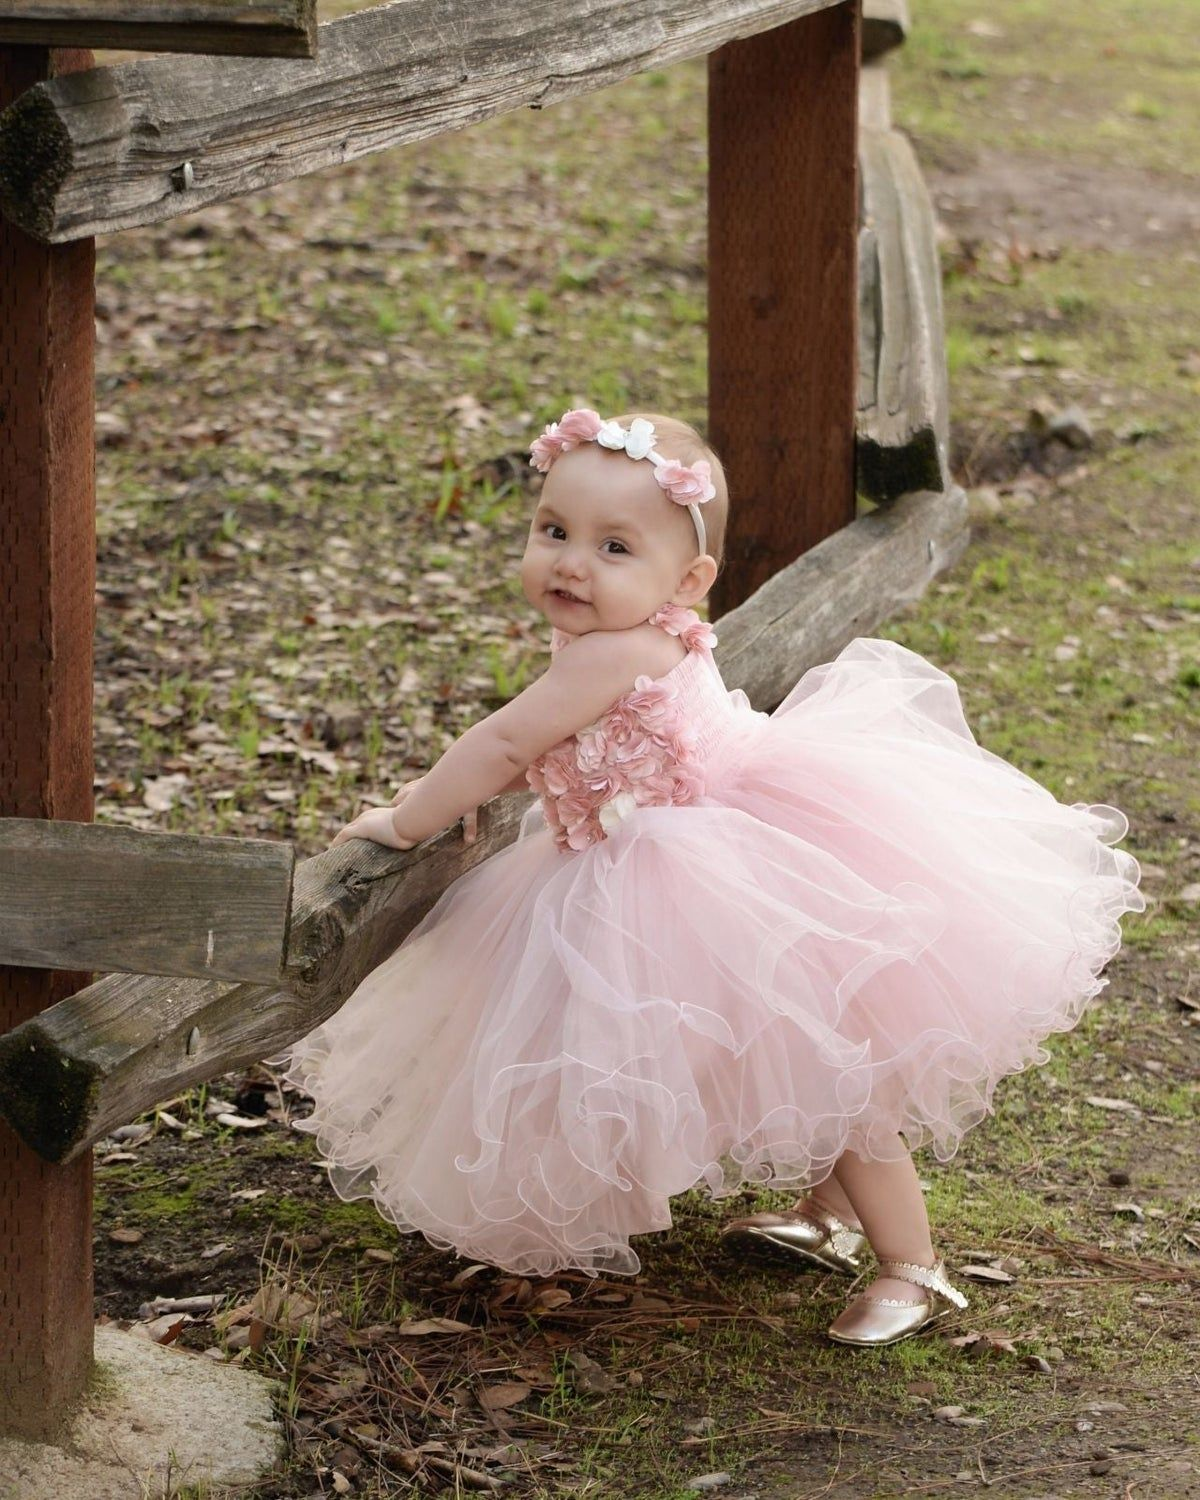 Size 1 Year Old Pink Birthday Dress And On Mercari Pink Birthday Dress Baby Girl Birthday Dress Birthday Girl Dress [ 1500 x 1200 Pixel ]